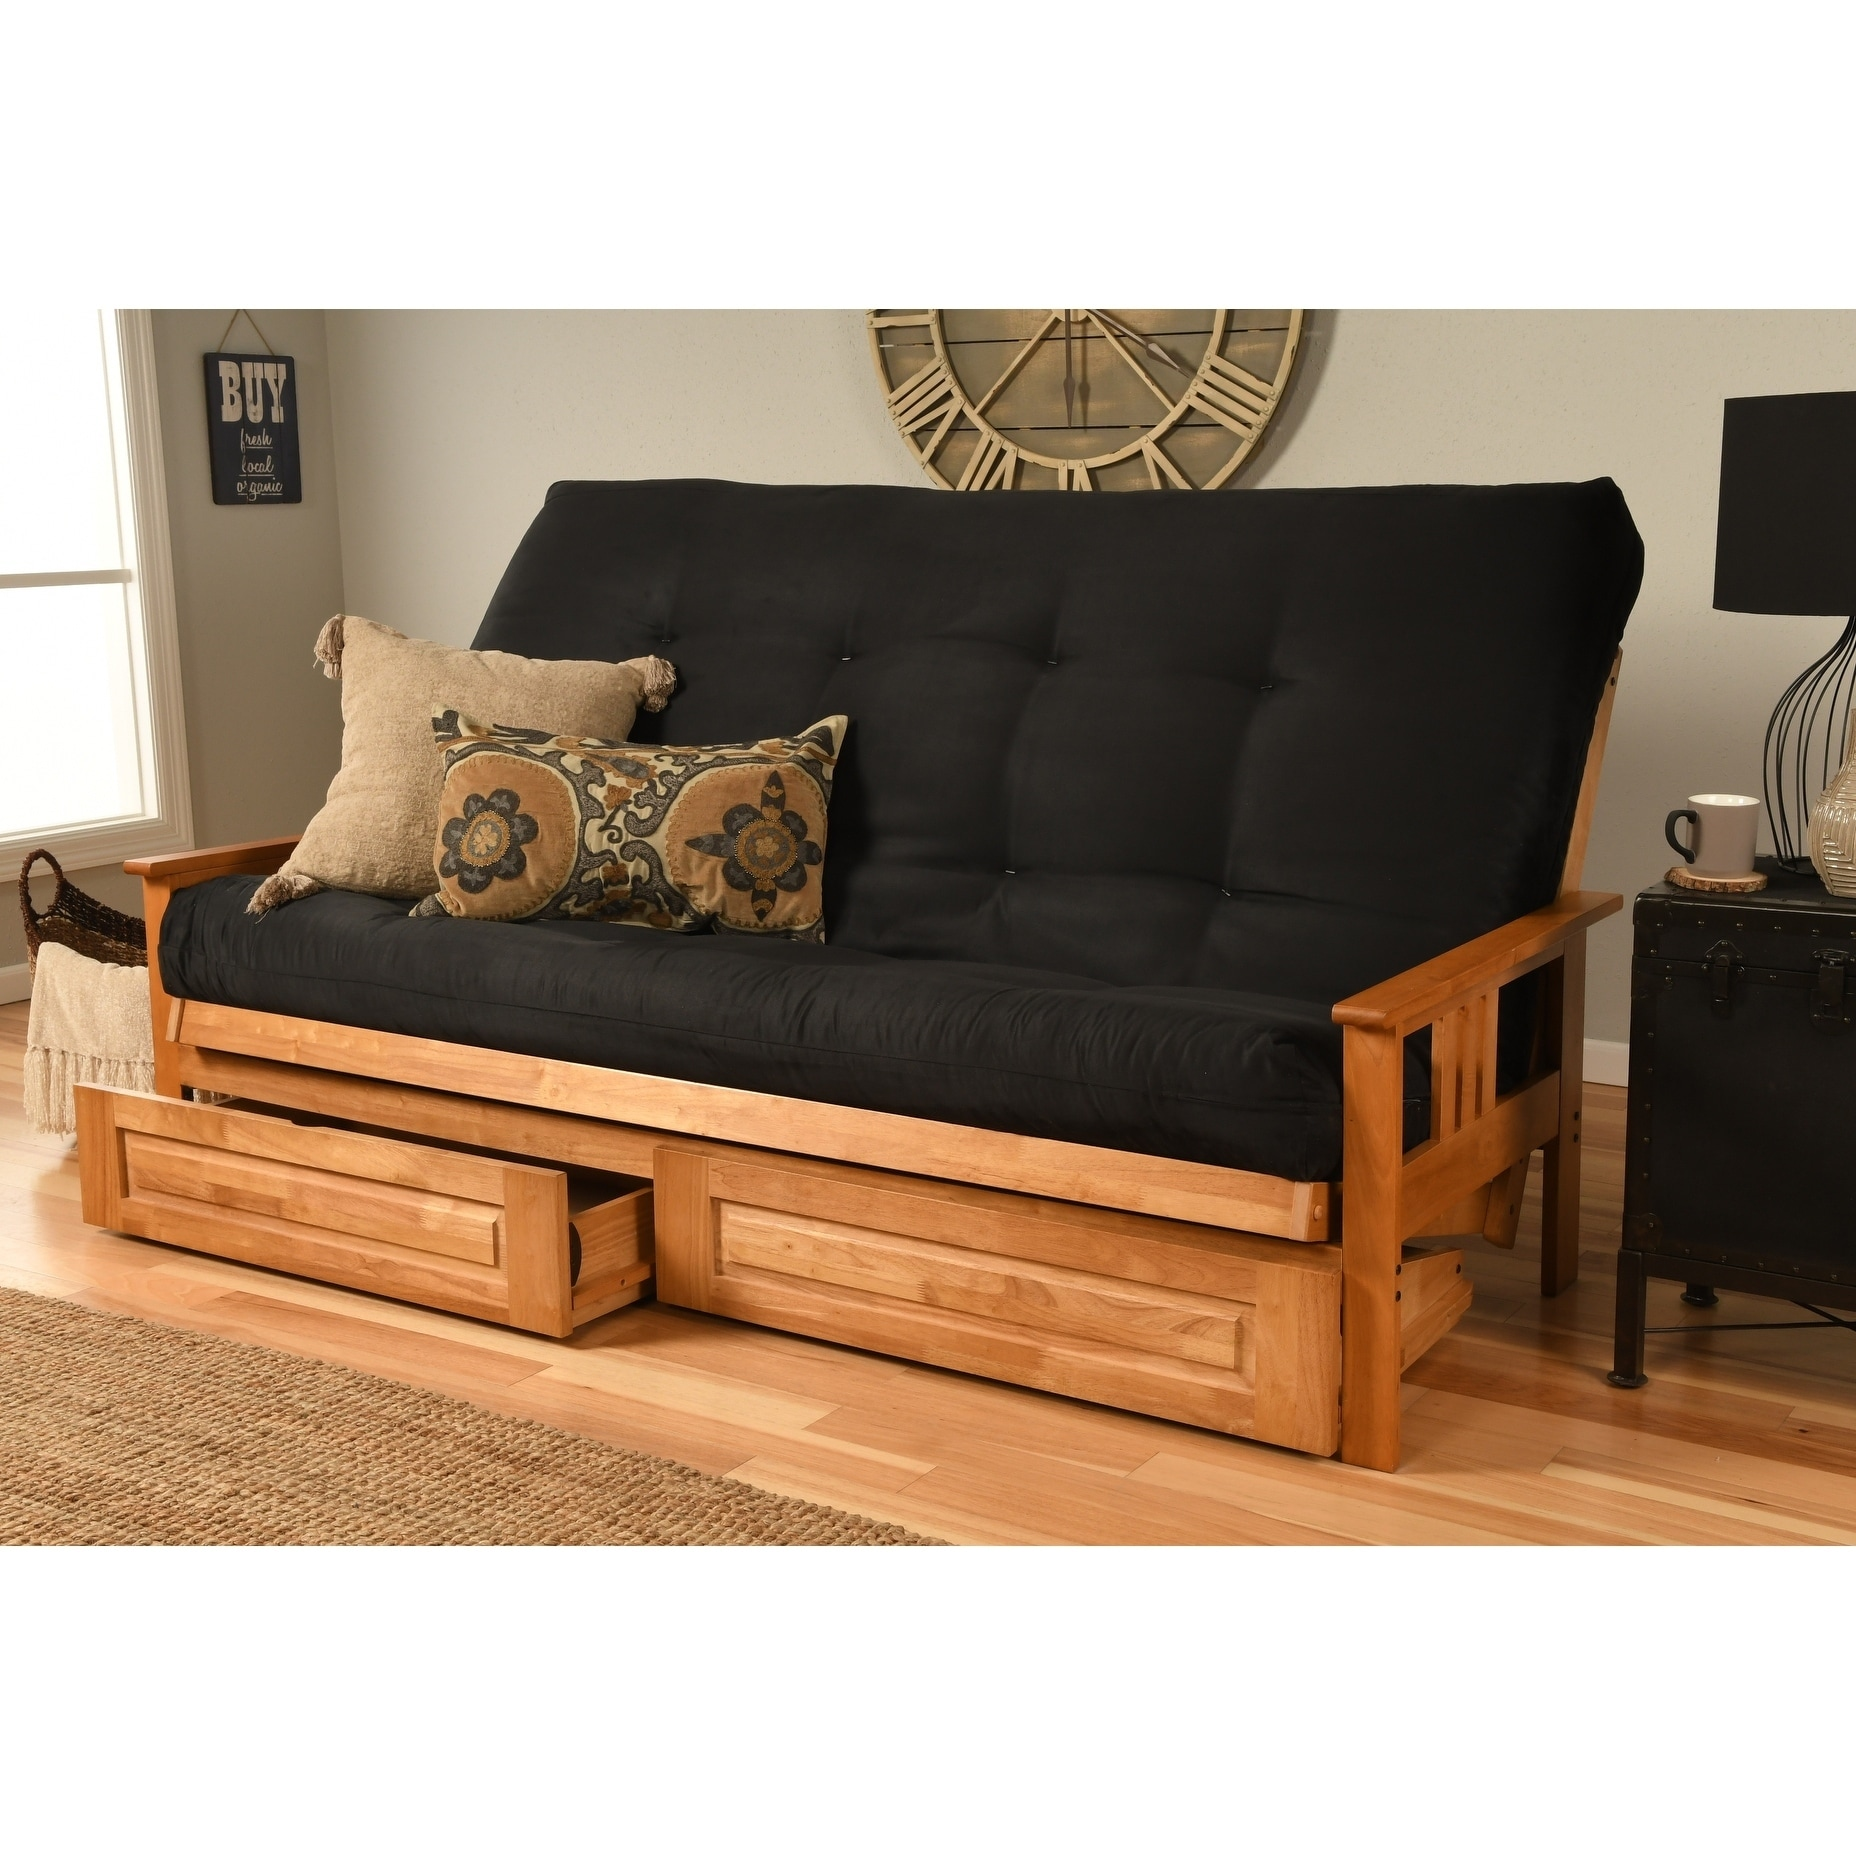 Superieur Queen Size Futon With Butternut Finish, Storage Drawers And Suede Mattress